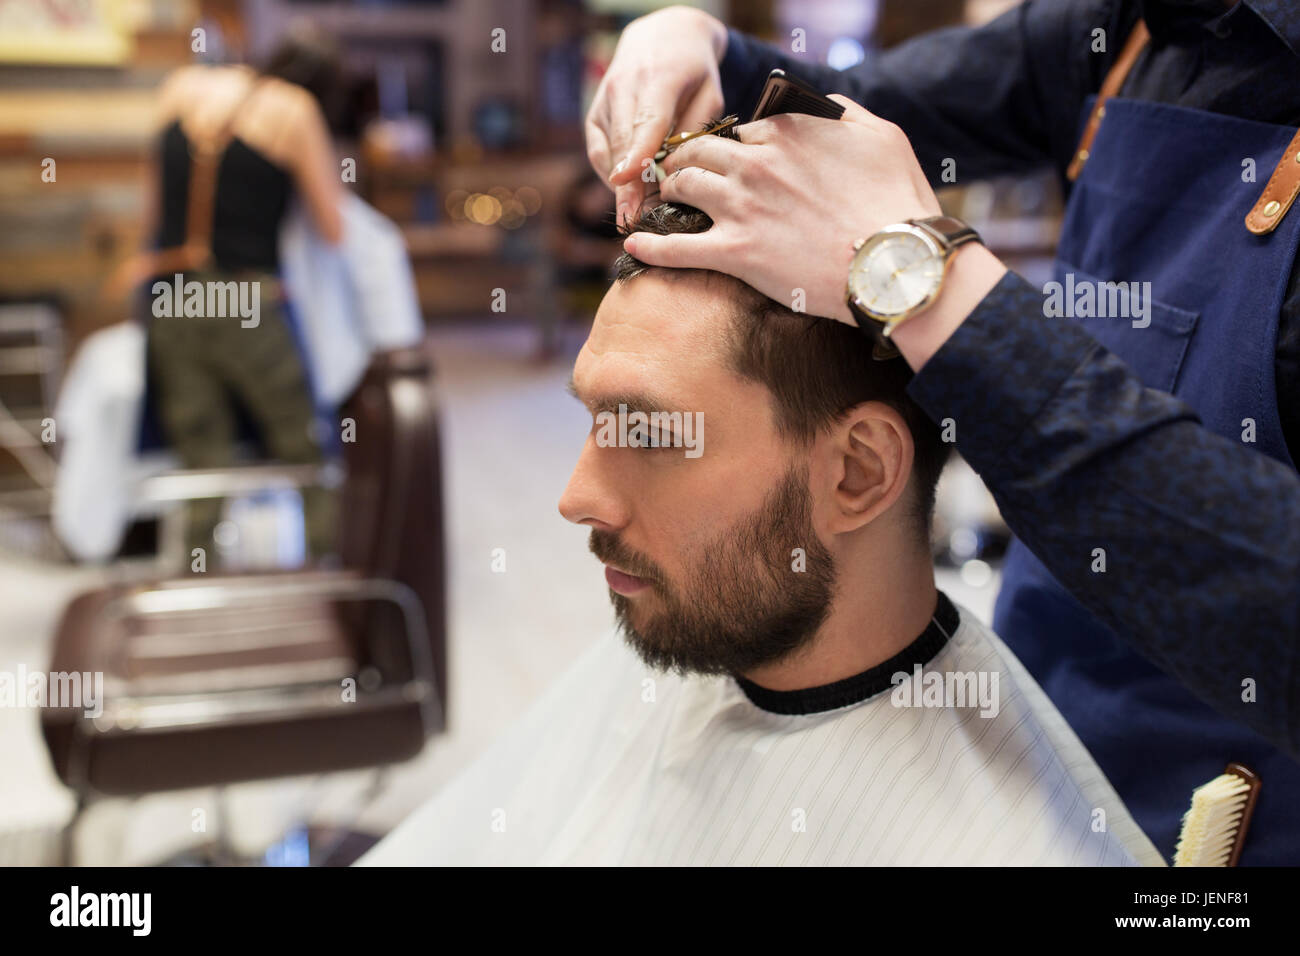 man and barber cutting hair at barbershop - Stock Image